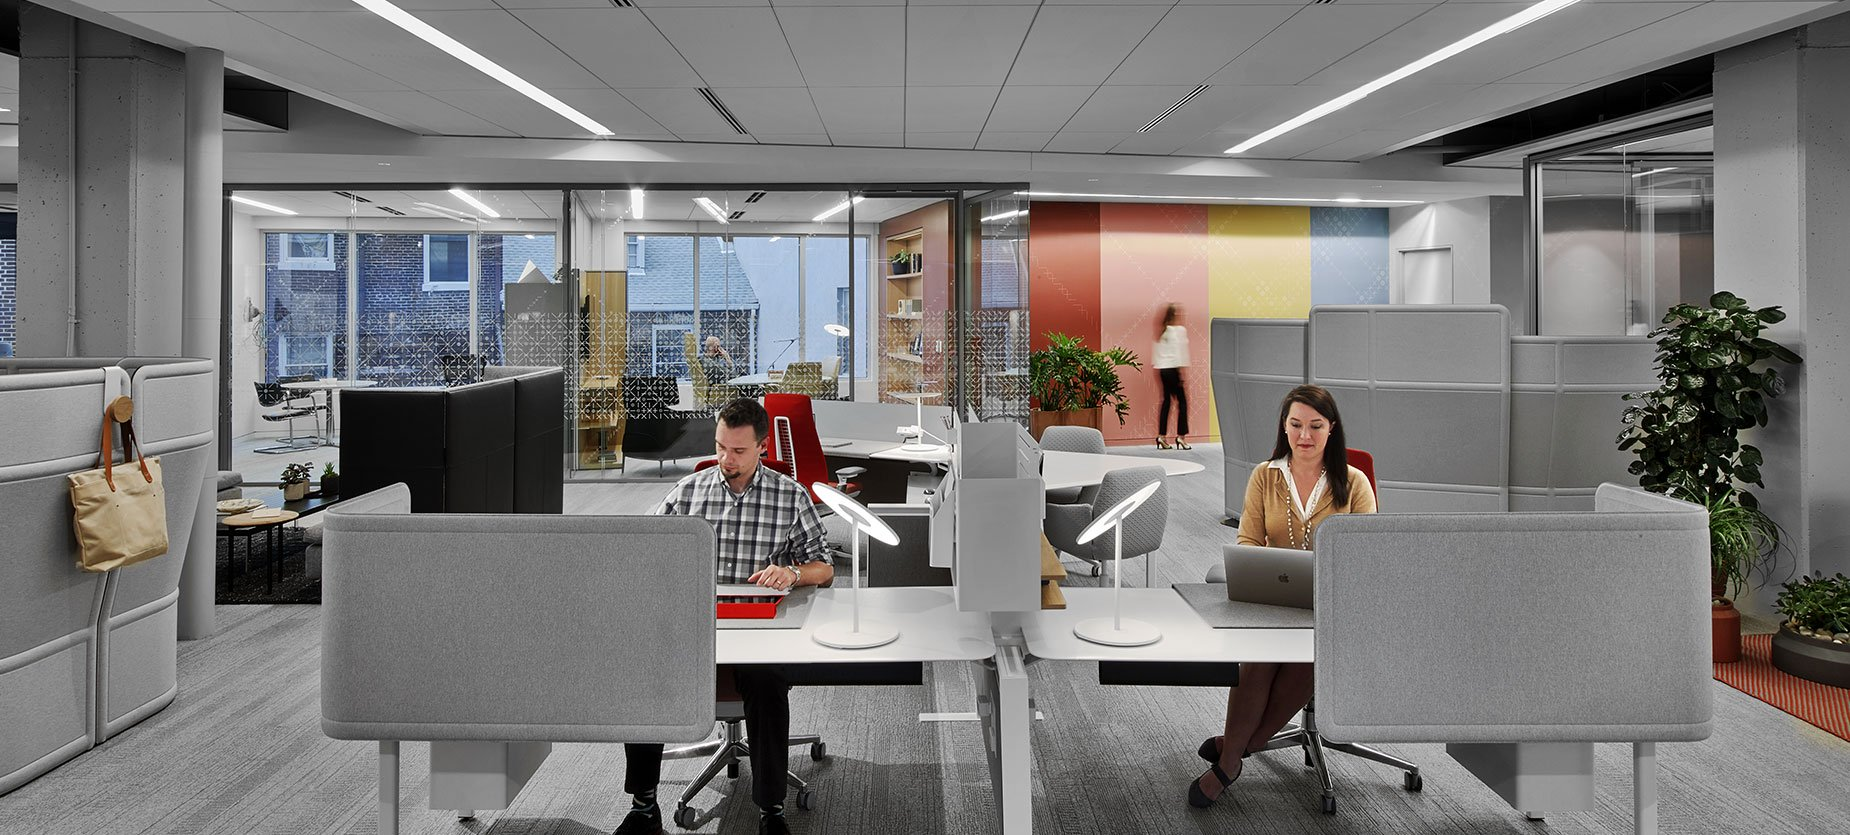 This simple application provides workspaces for those on a team who collaborate and who work primarily in the digital realm, with minimal storage needs. It not only grants them user control over posture, but integrates a small meeting table into the application. The modest panel height provides power access while retaining visual connectedness to their team and the office environment.